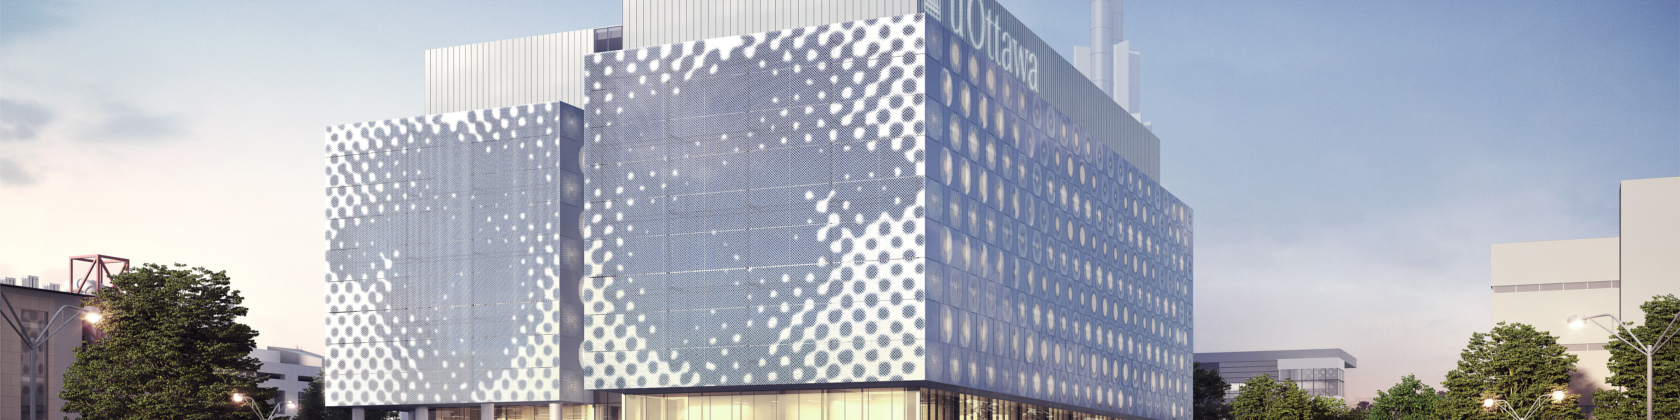 A banner illustrating part of the new STEM complex